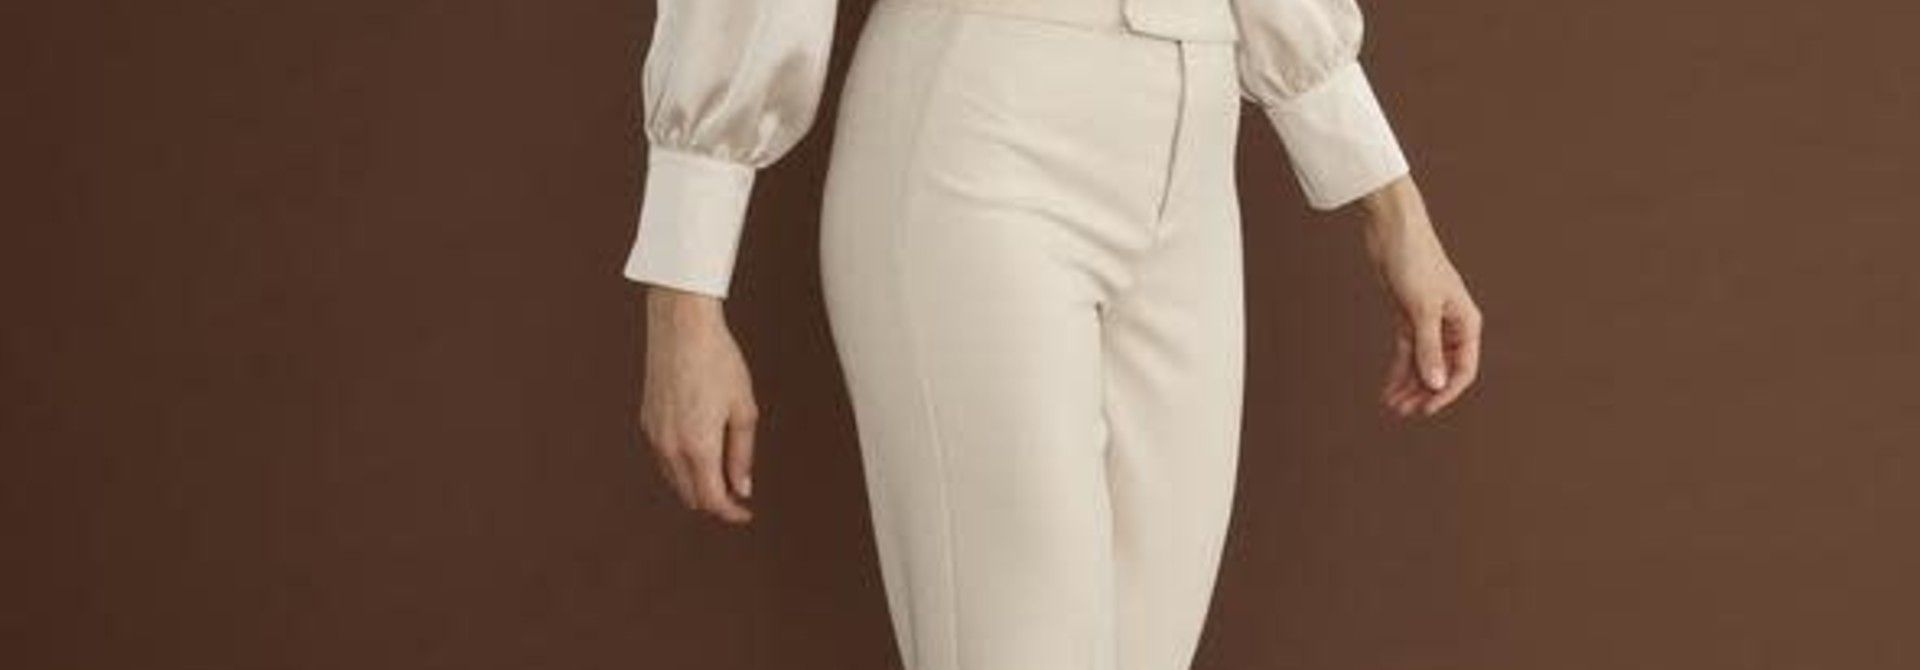 Laure pants Oscar the collection